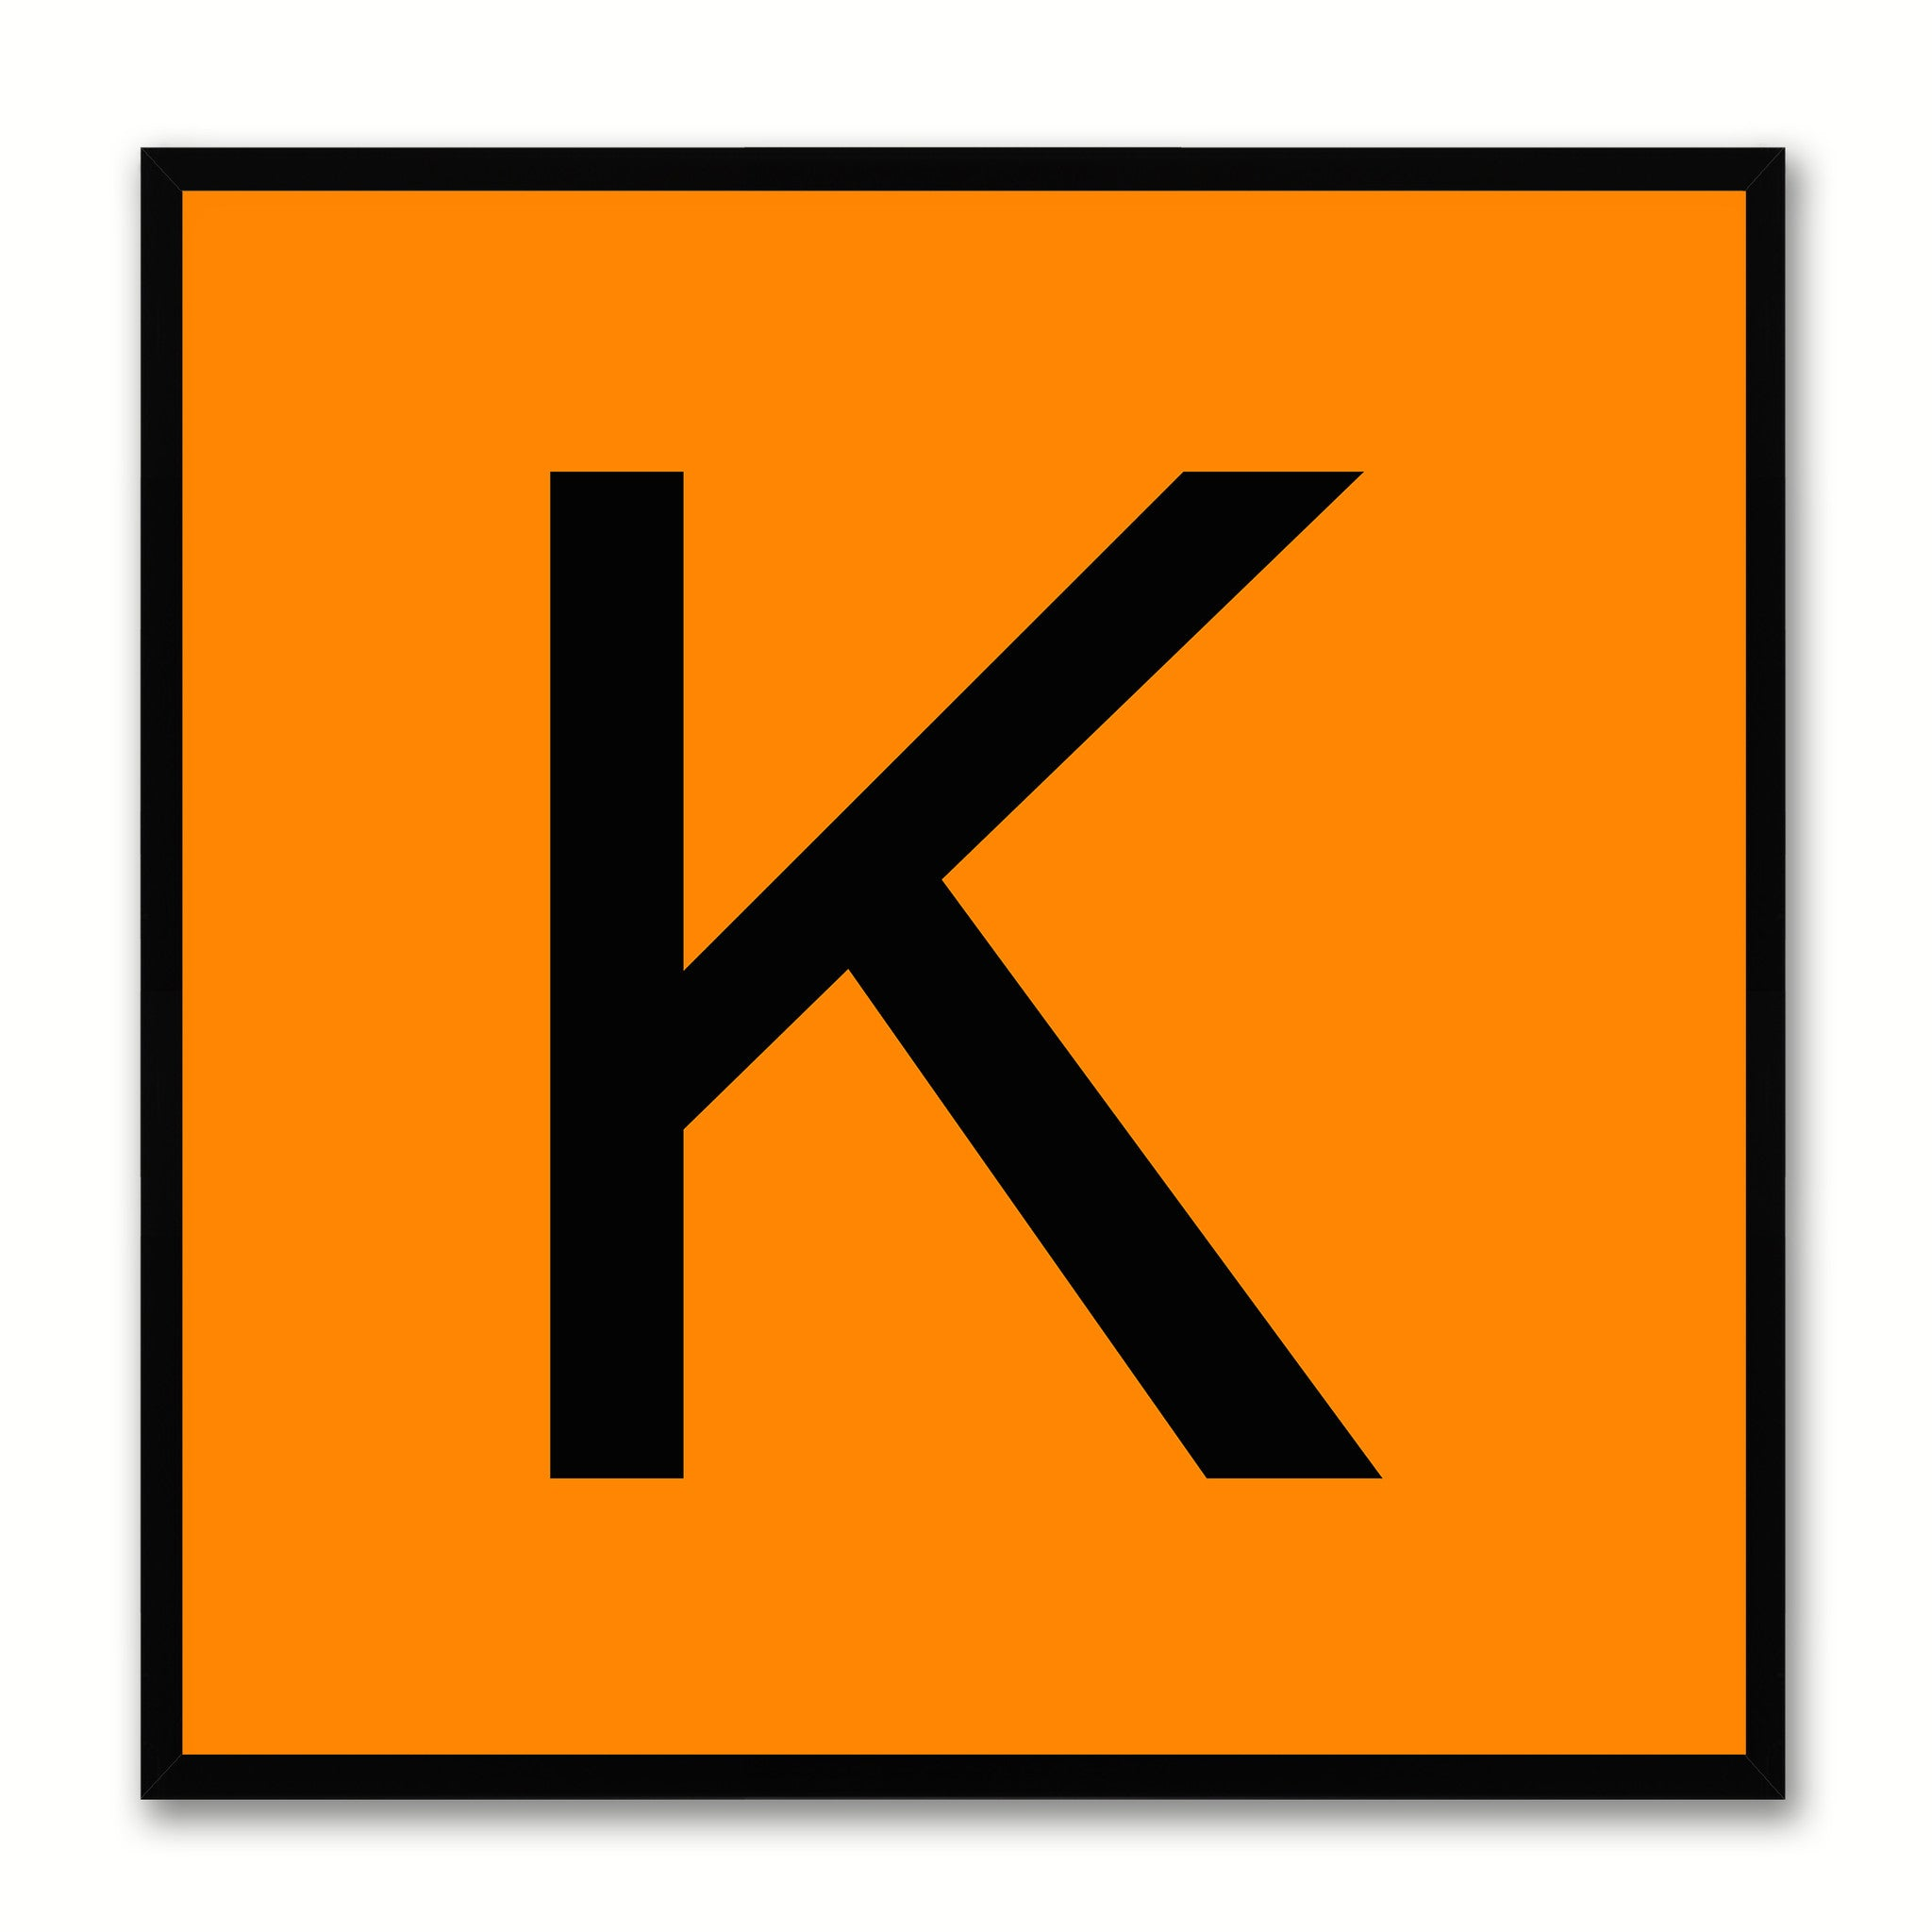 Alphabet K Orange Canvas Print Black Frame Kids Bedroom Wall Décor Home Art